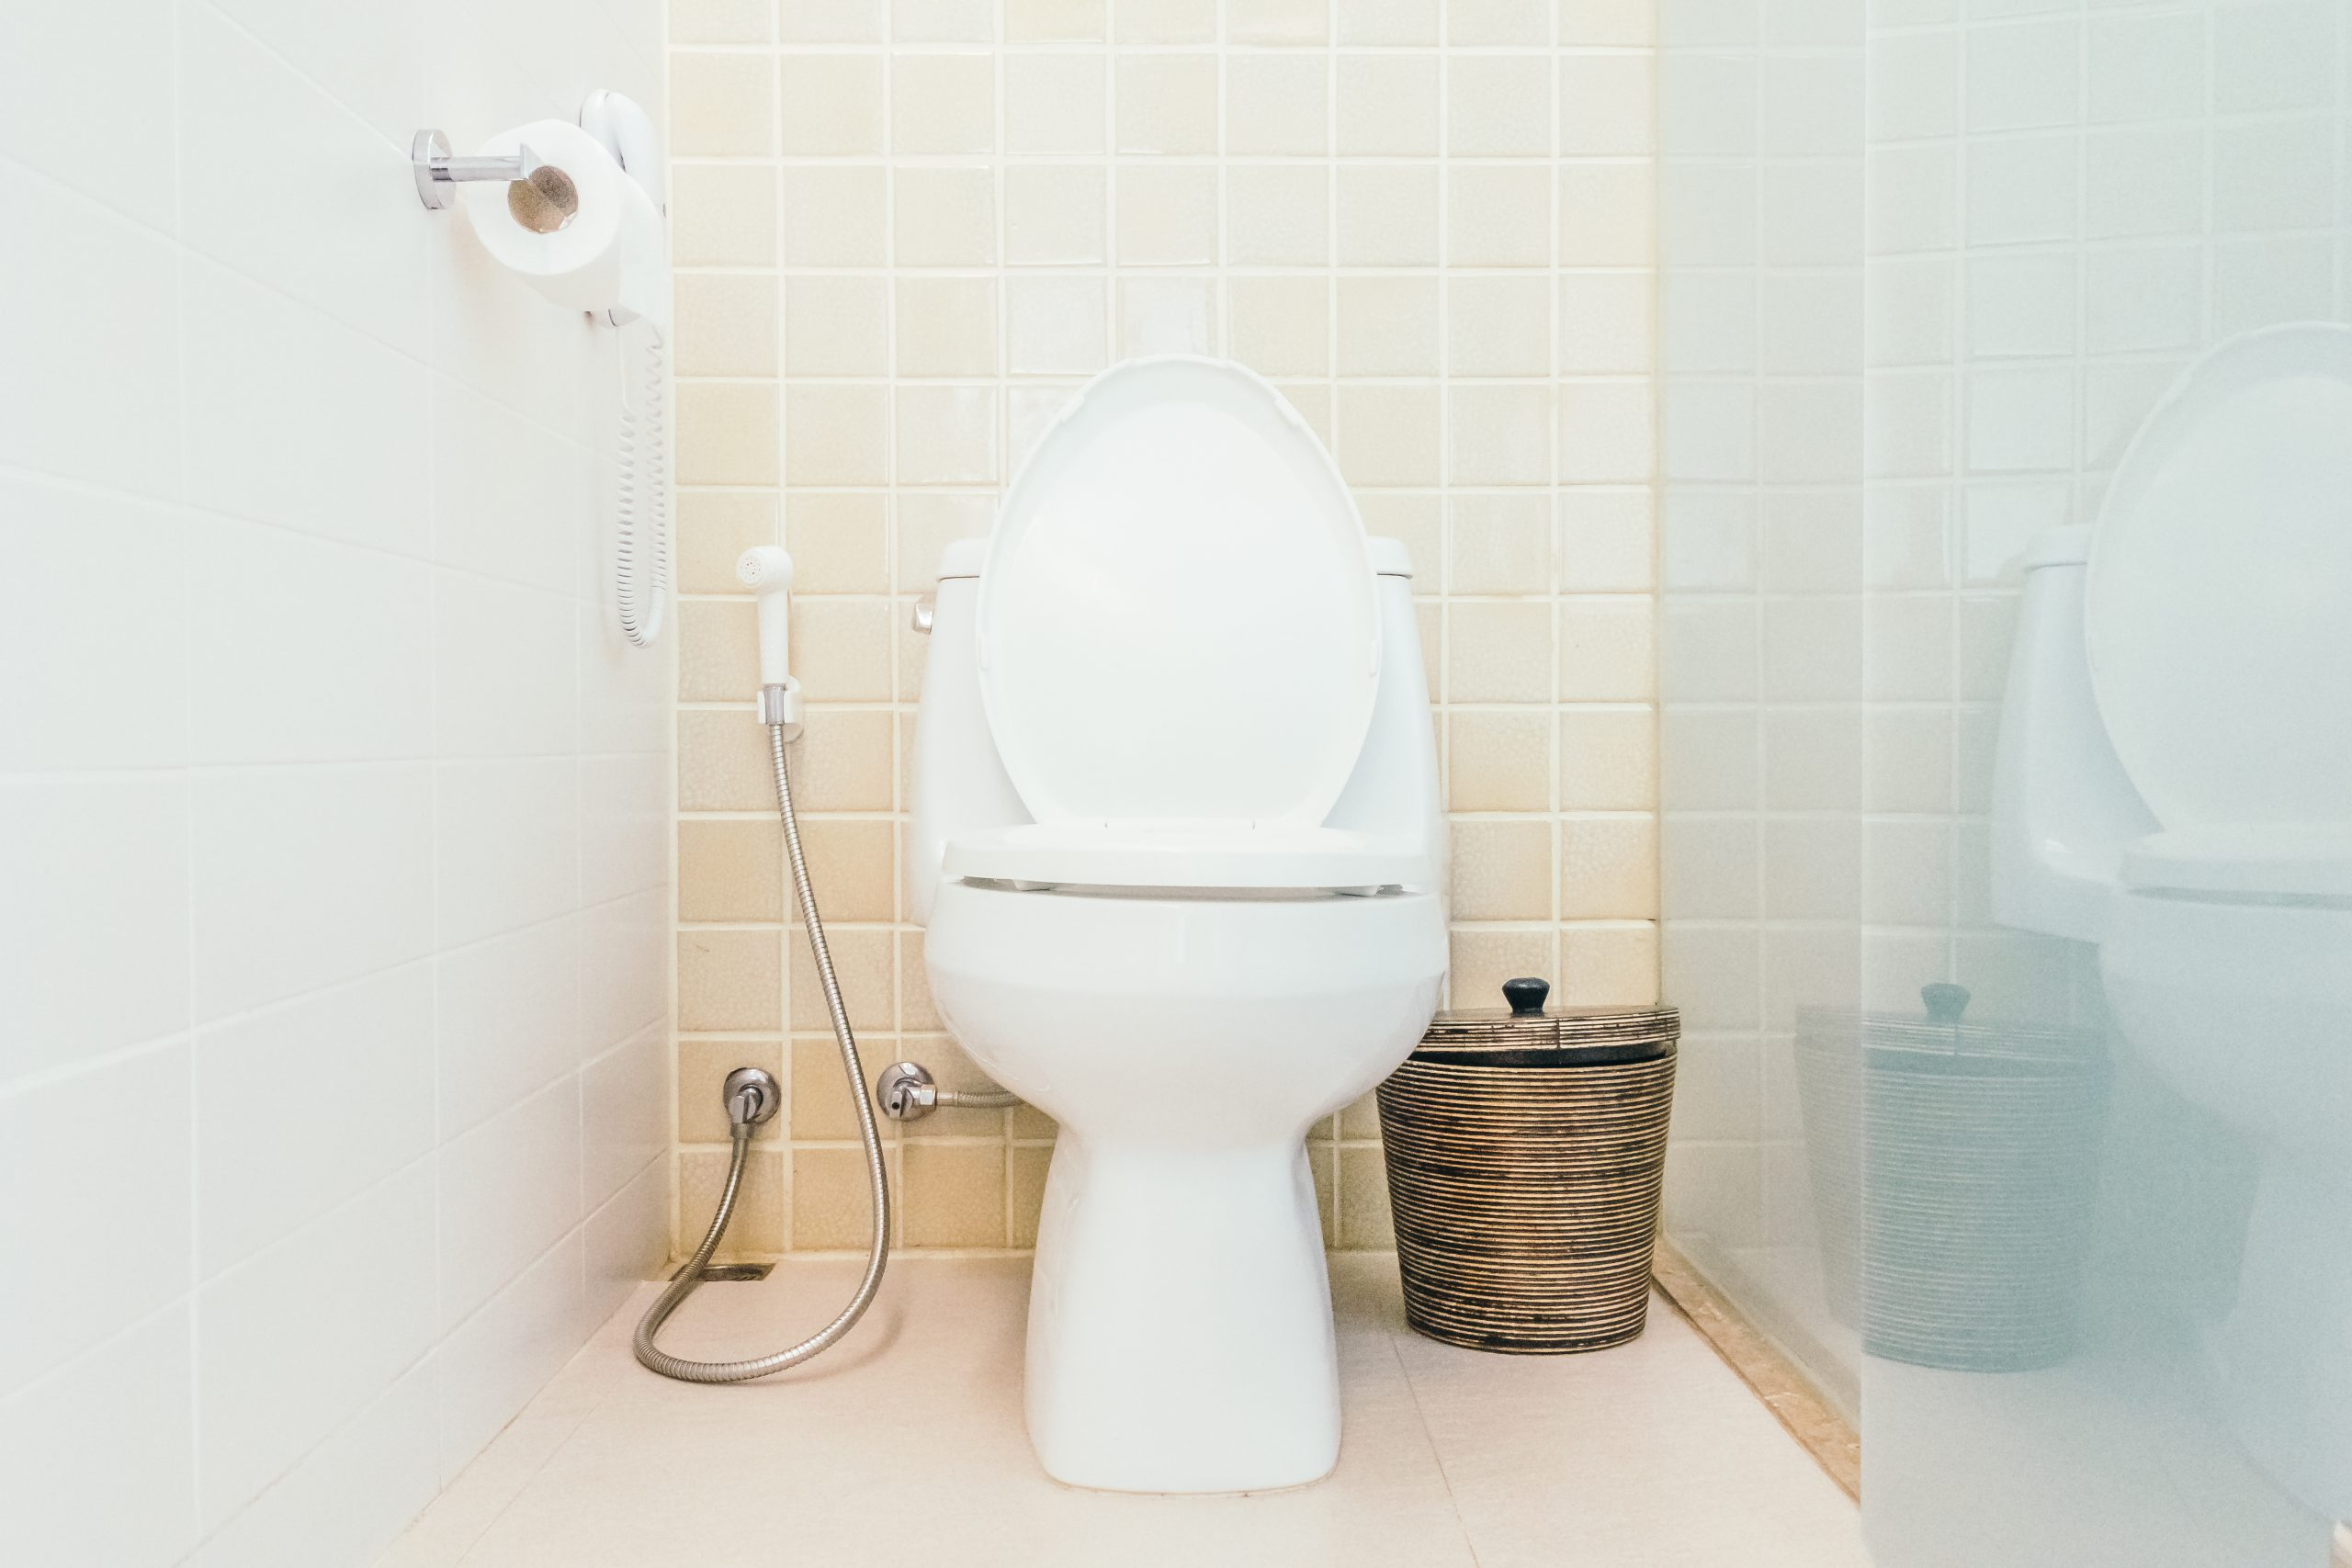 Toilet in bathroom for urinary or urination issues